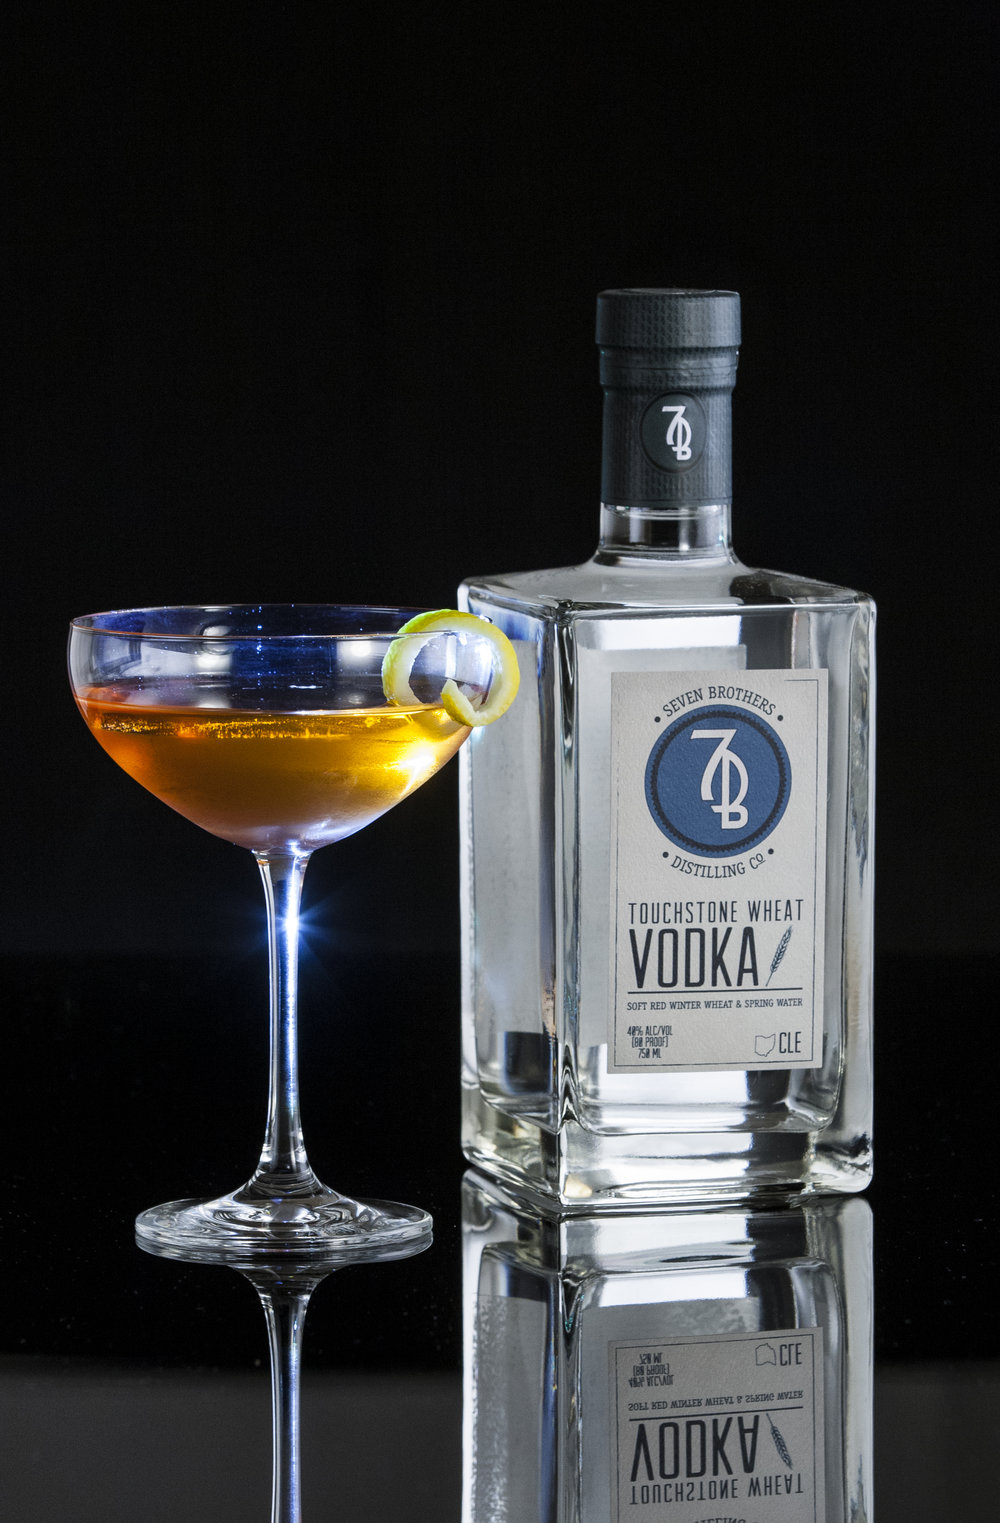 Queen Bee Vodka